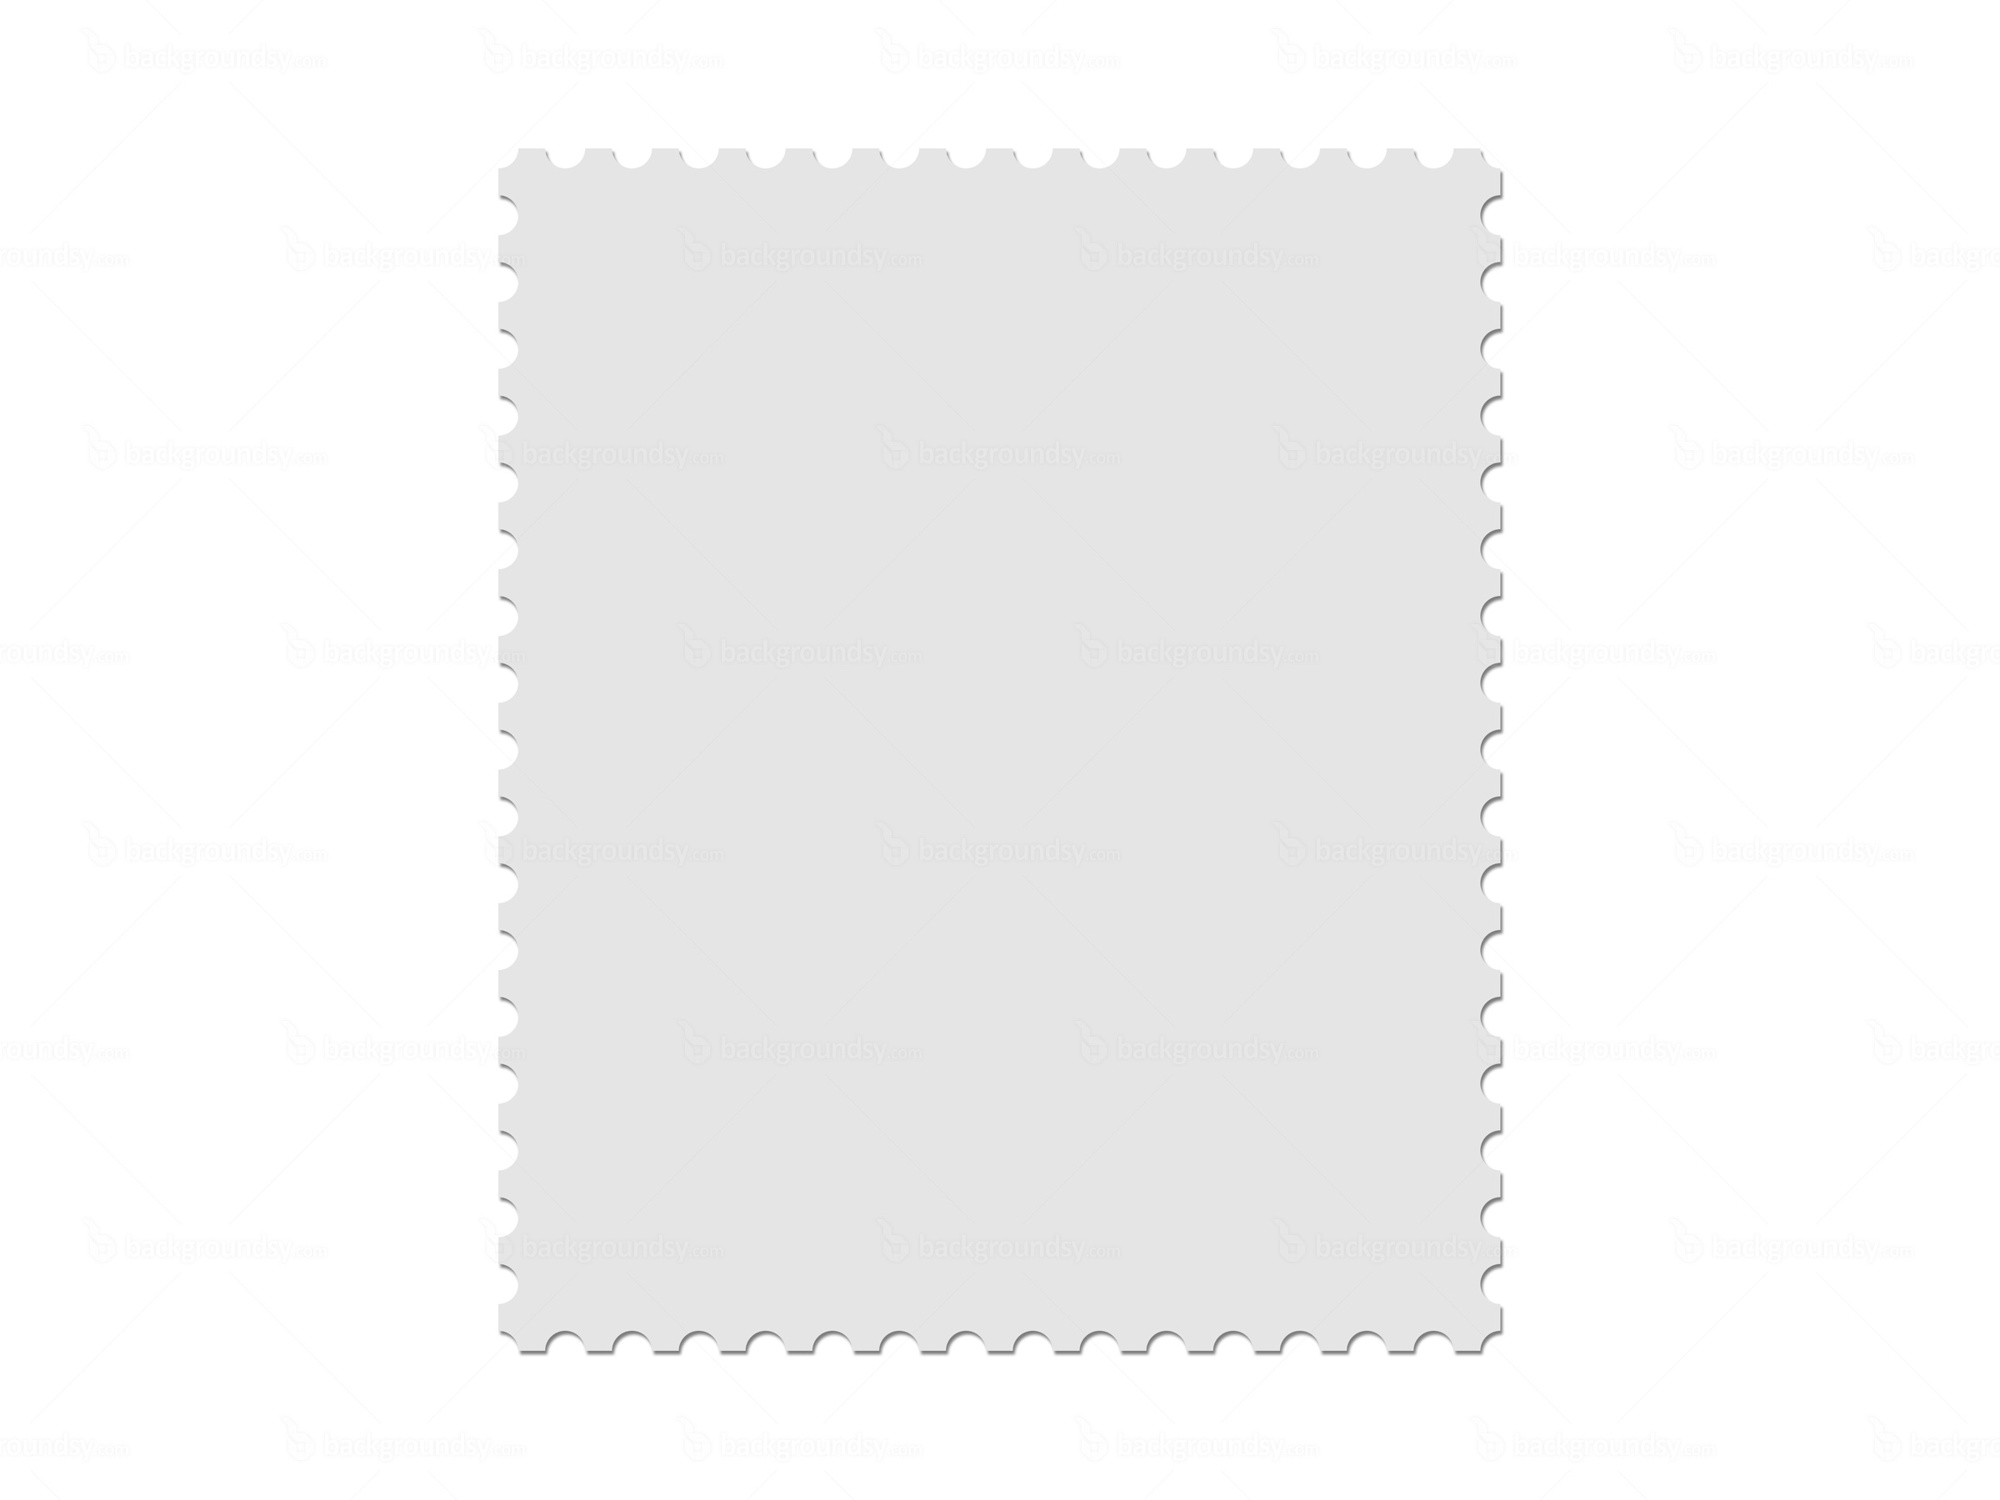 Blank Postage Stamp Template